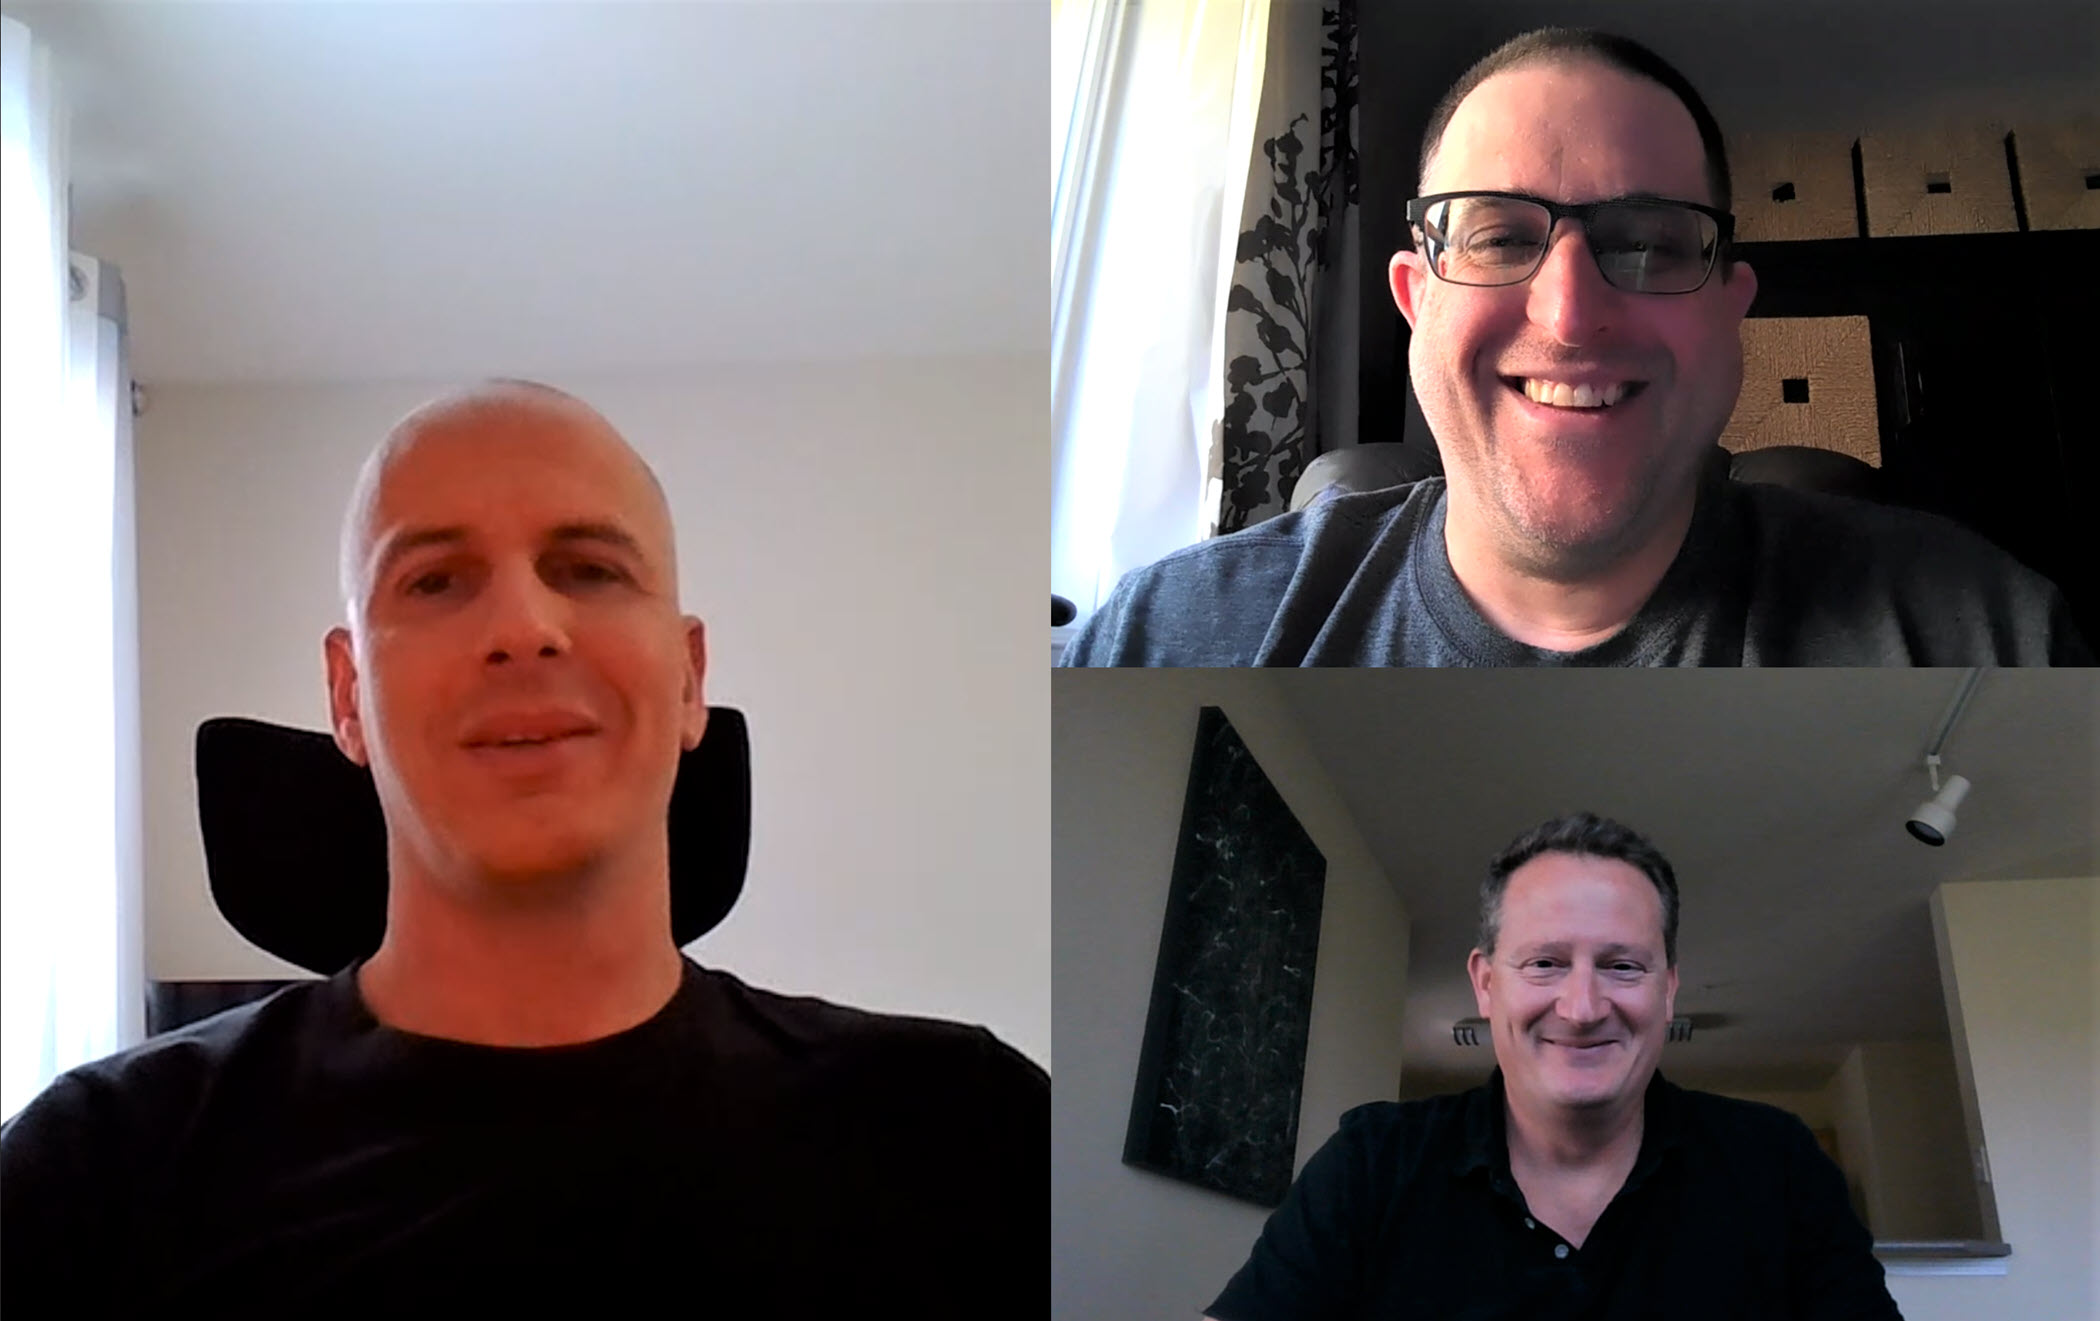 Steve Means, Carmichael Patton, and Phil Suver smile as they talk on a Microsoft Teams call.